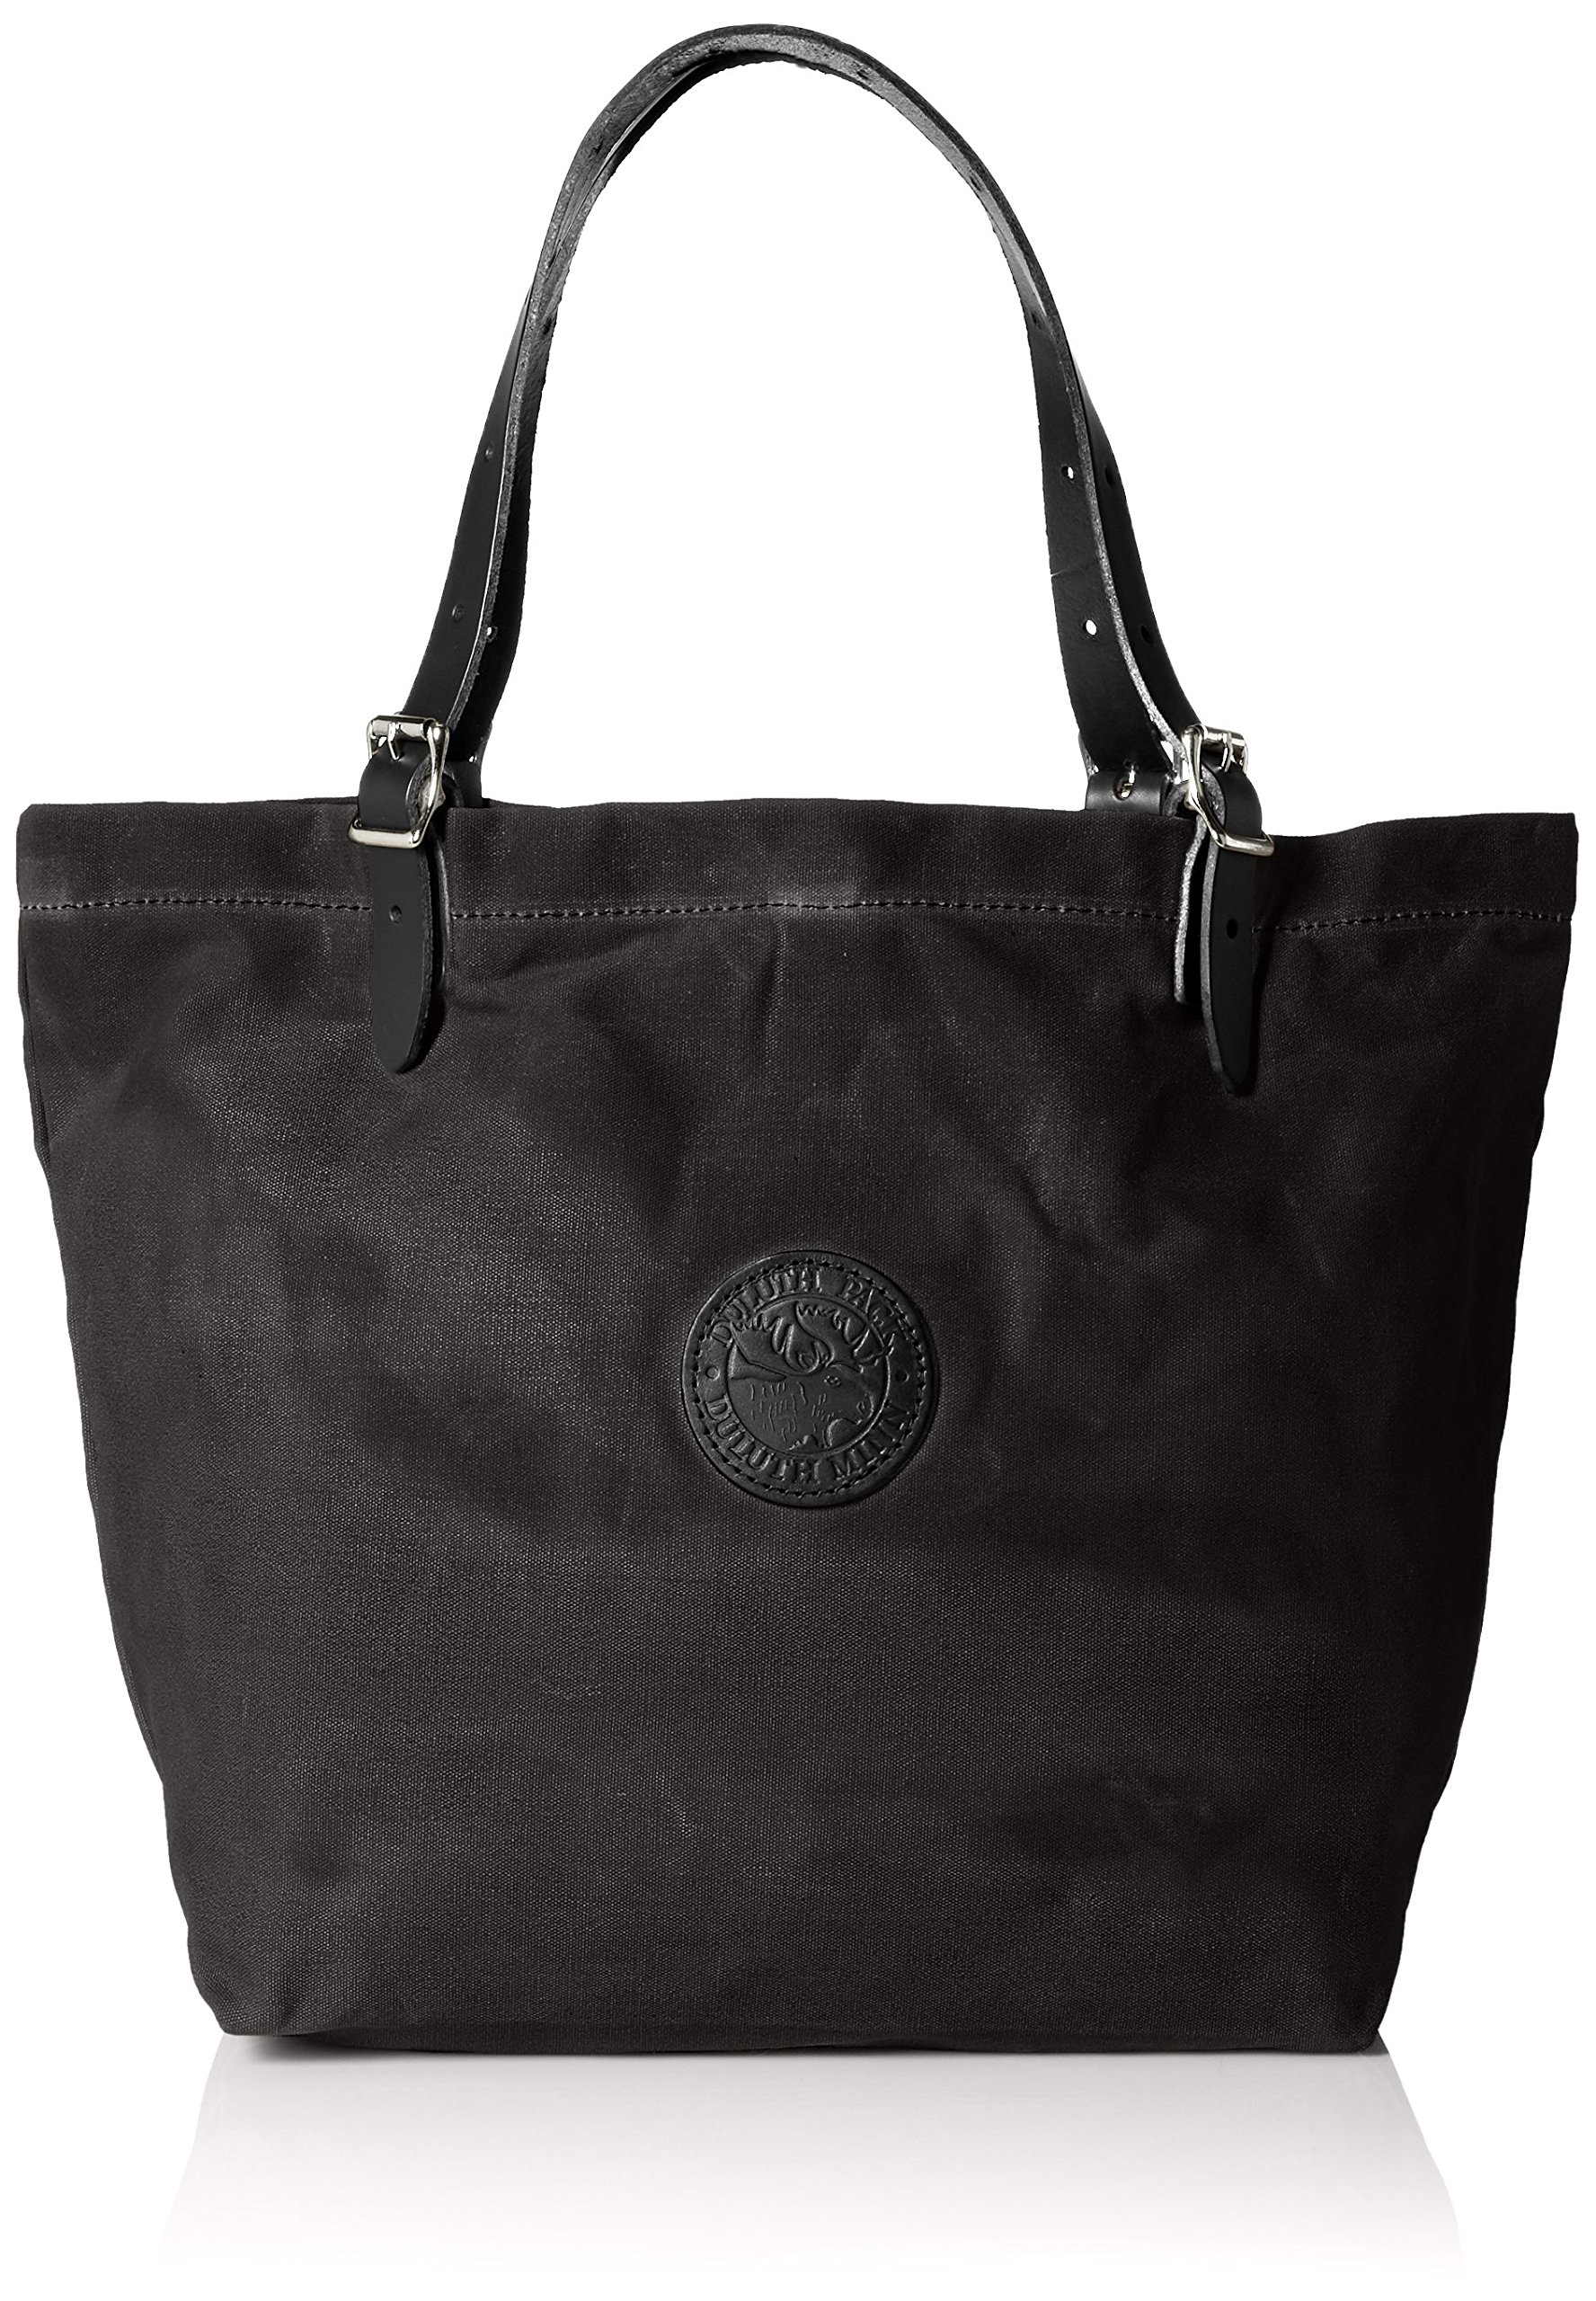 Duluth Pack Market Tote, Great Lakes, 14 x 18 x 9-Inch by Duluth Pack (Image #1)